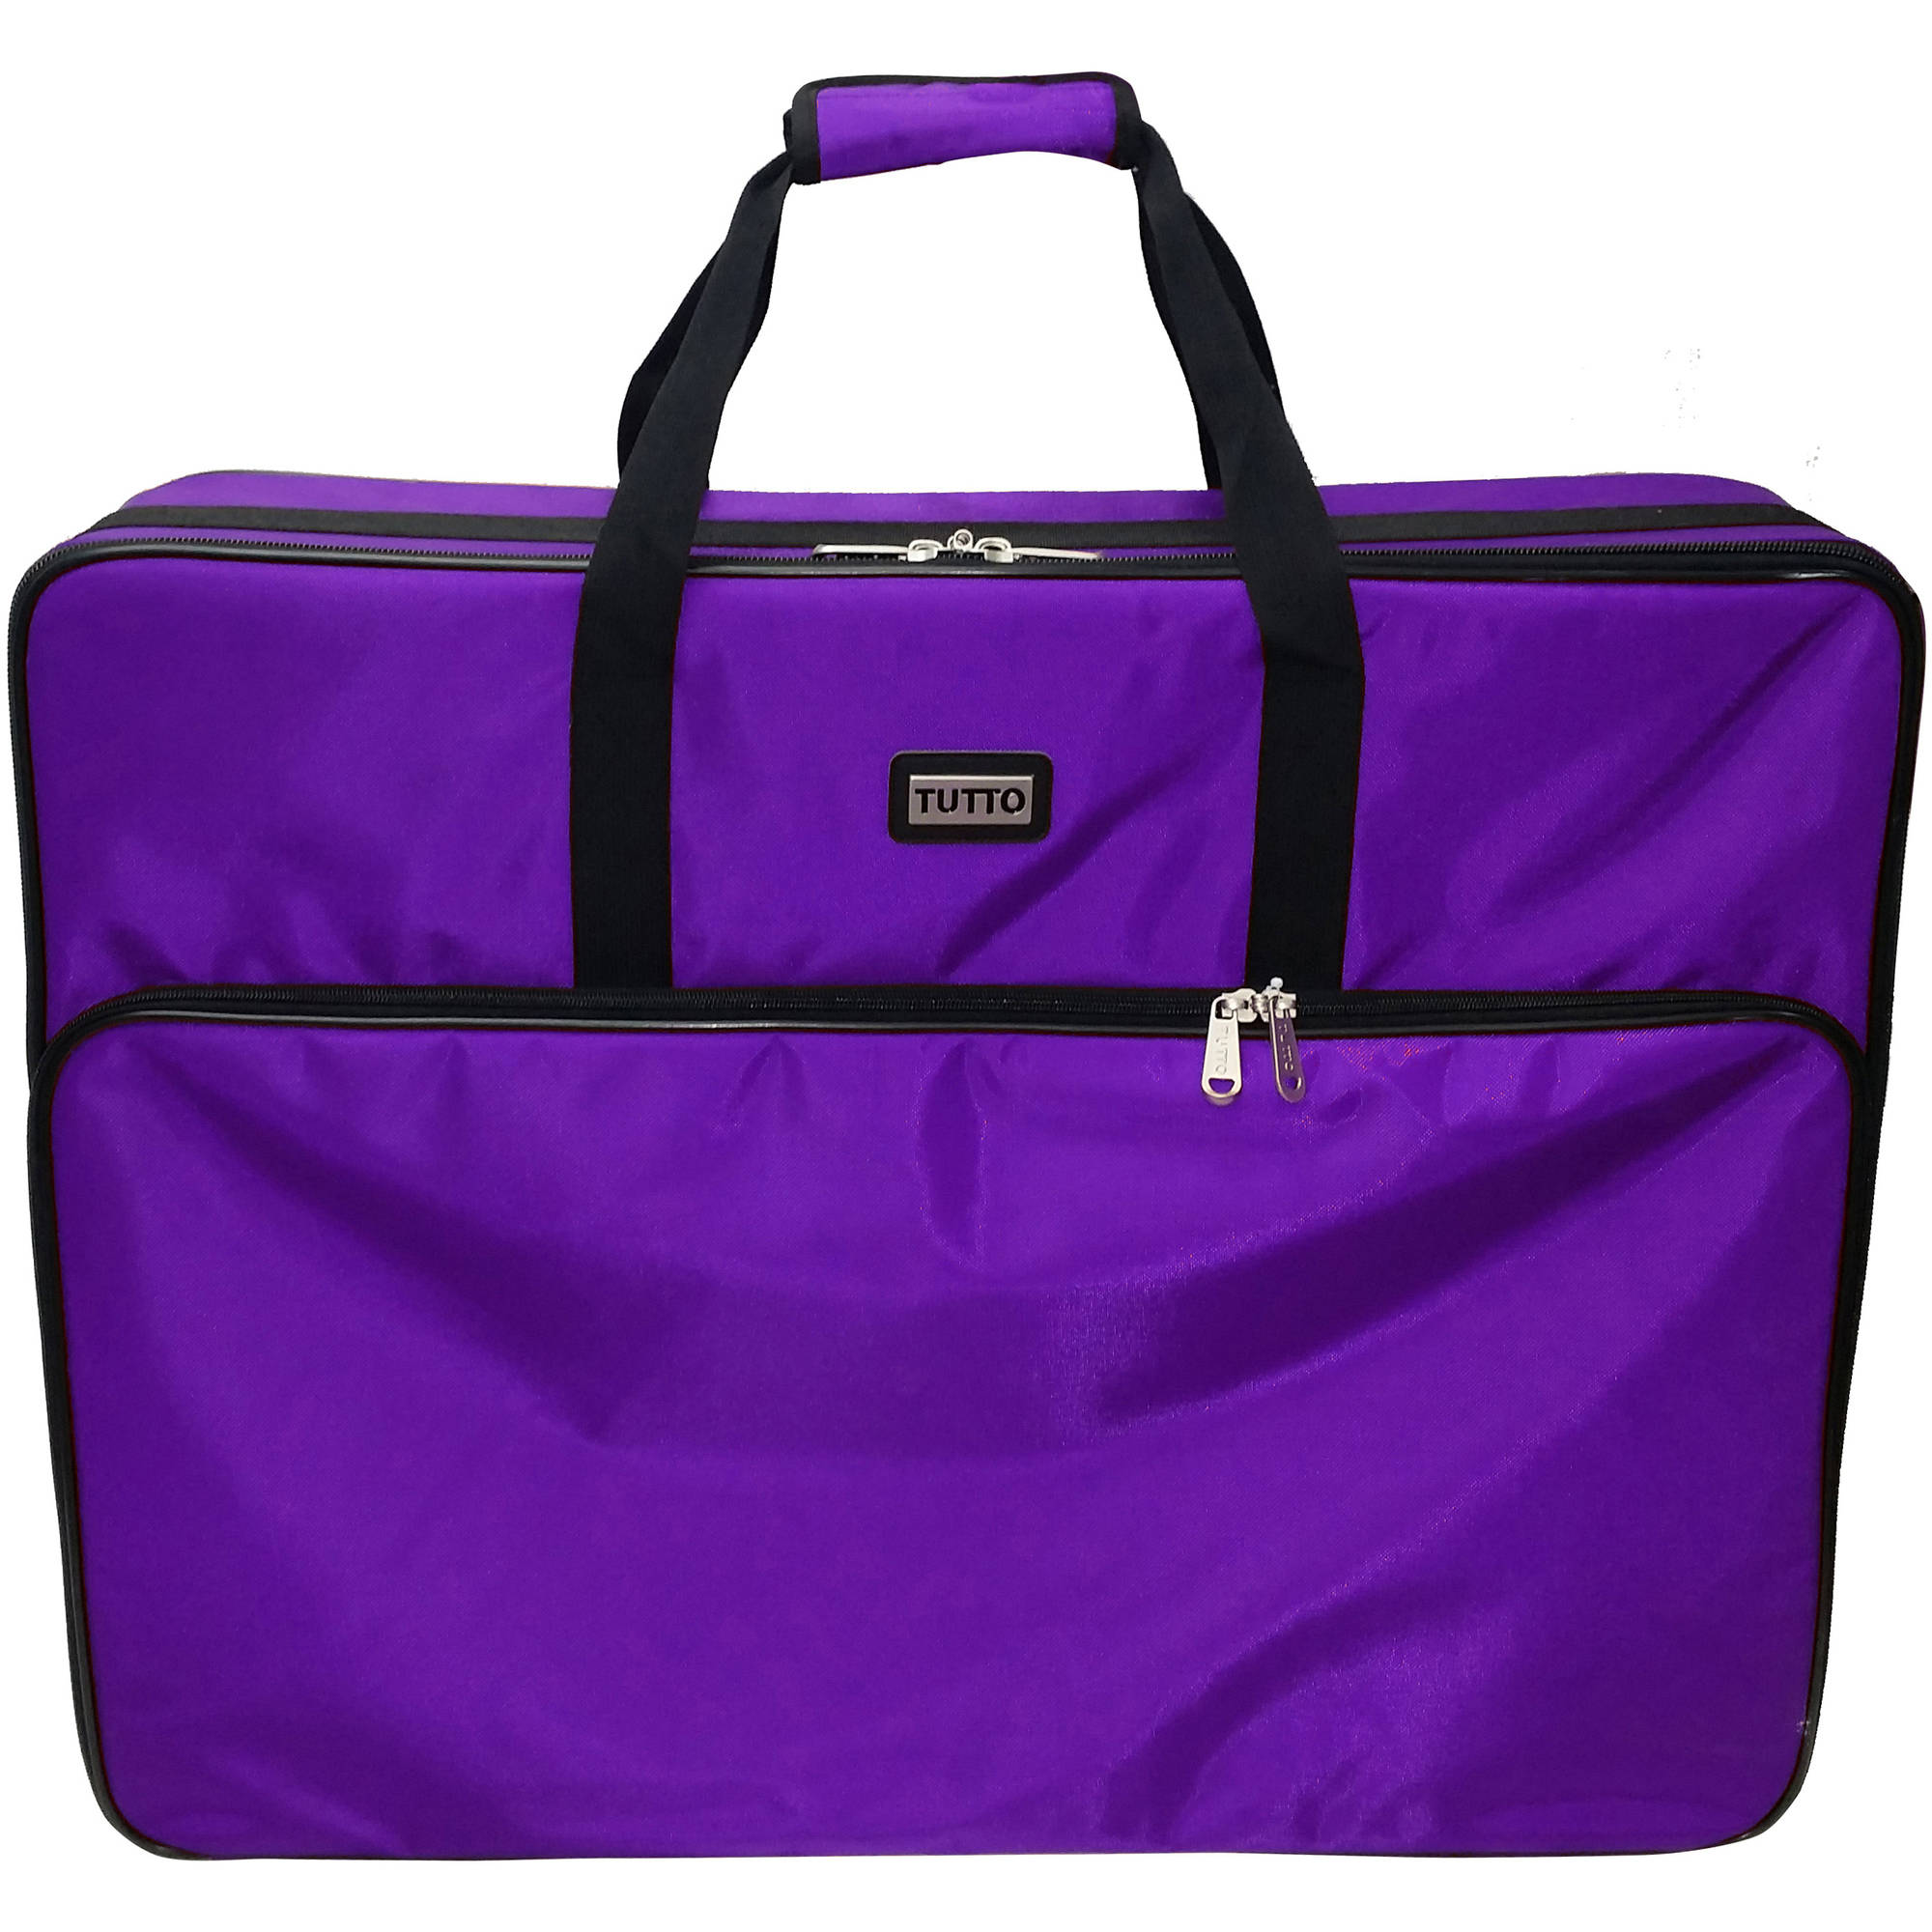 "TUTTO 28"" Embroidery Project Bag, Purple"